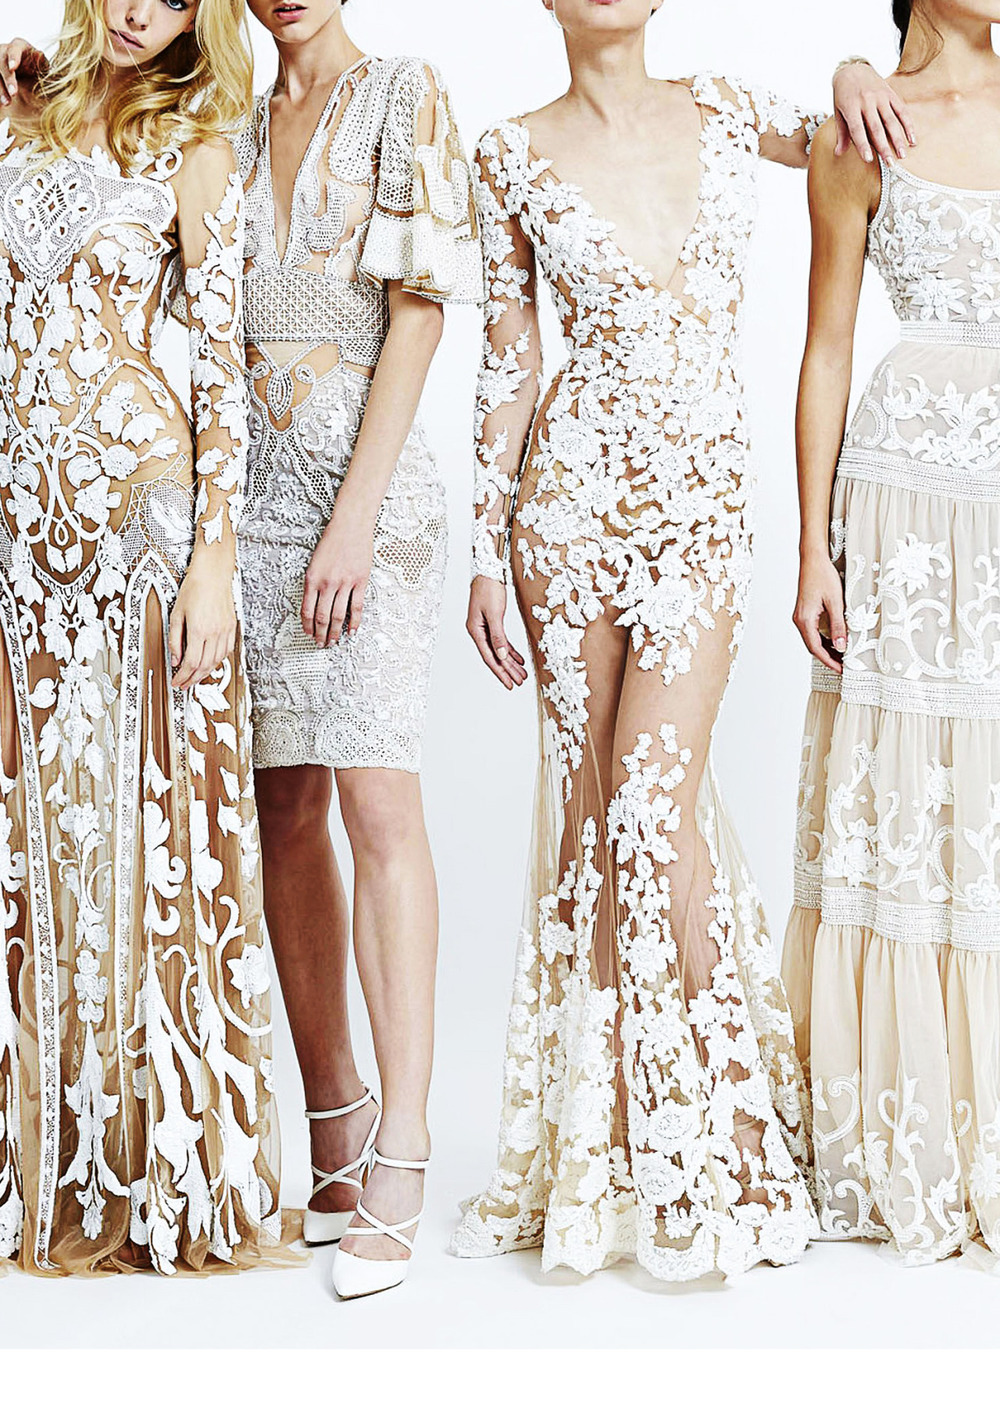 fuckyeahfashioncouture: Zuhair Murad Spring-Summer 2015 Drool. 😍